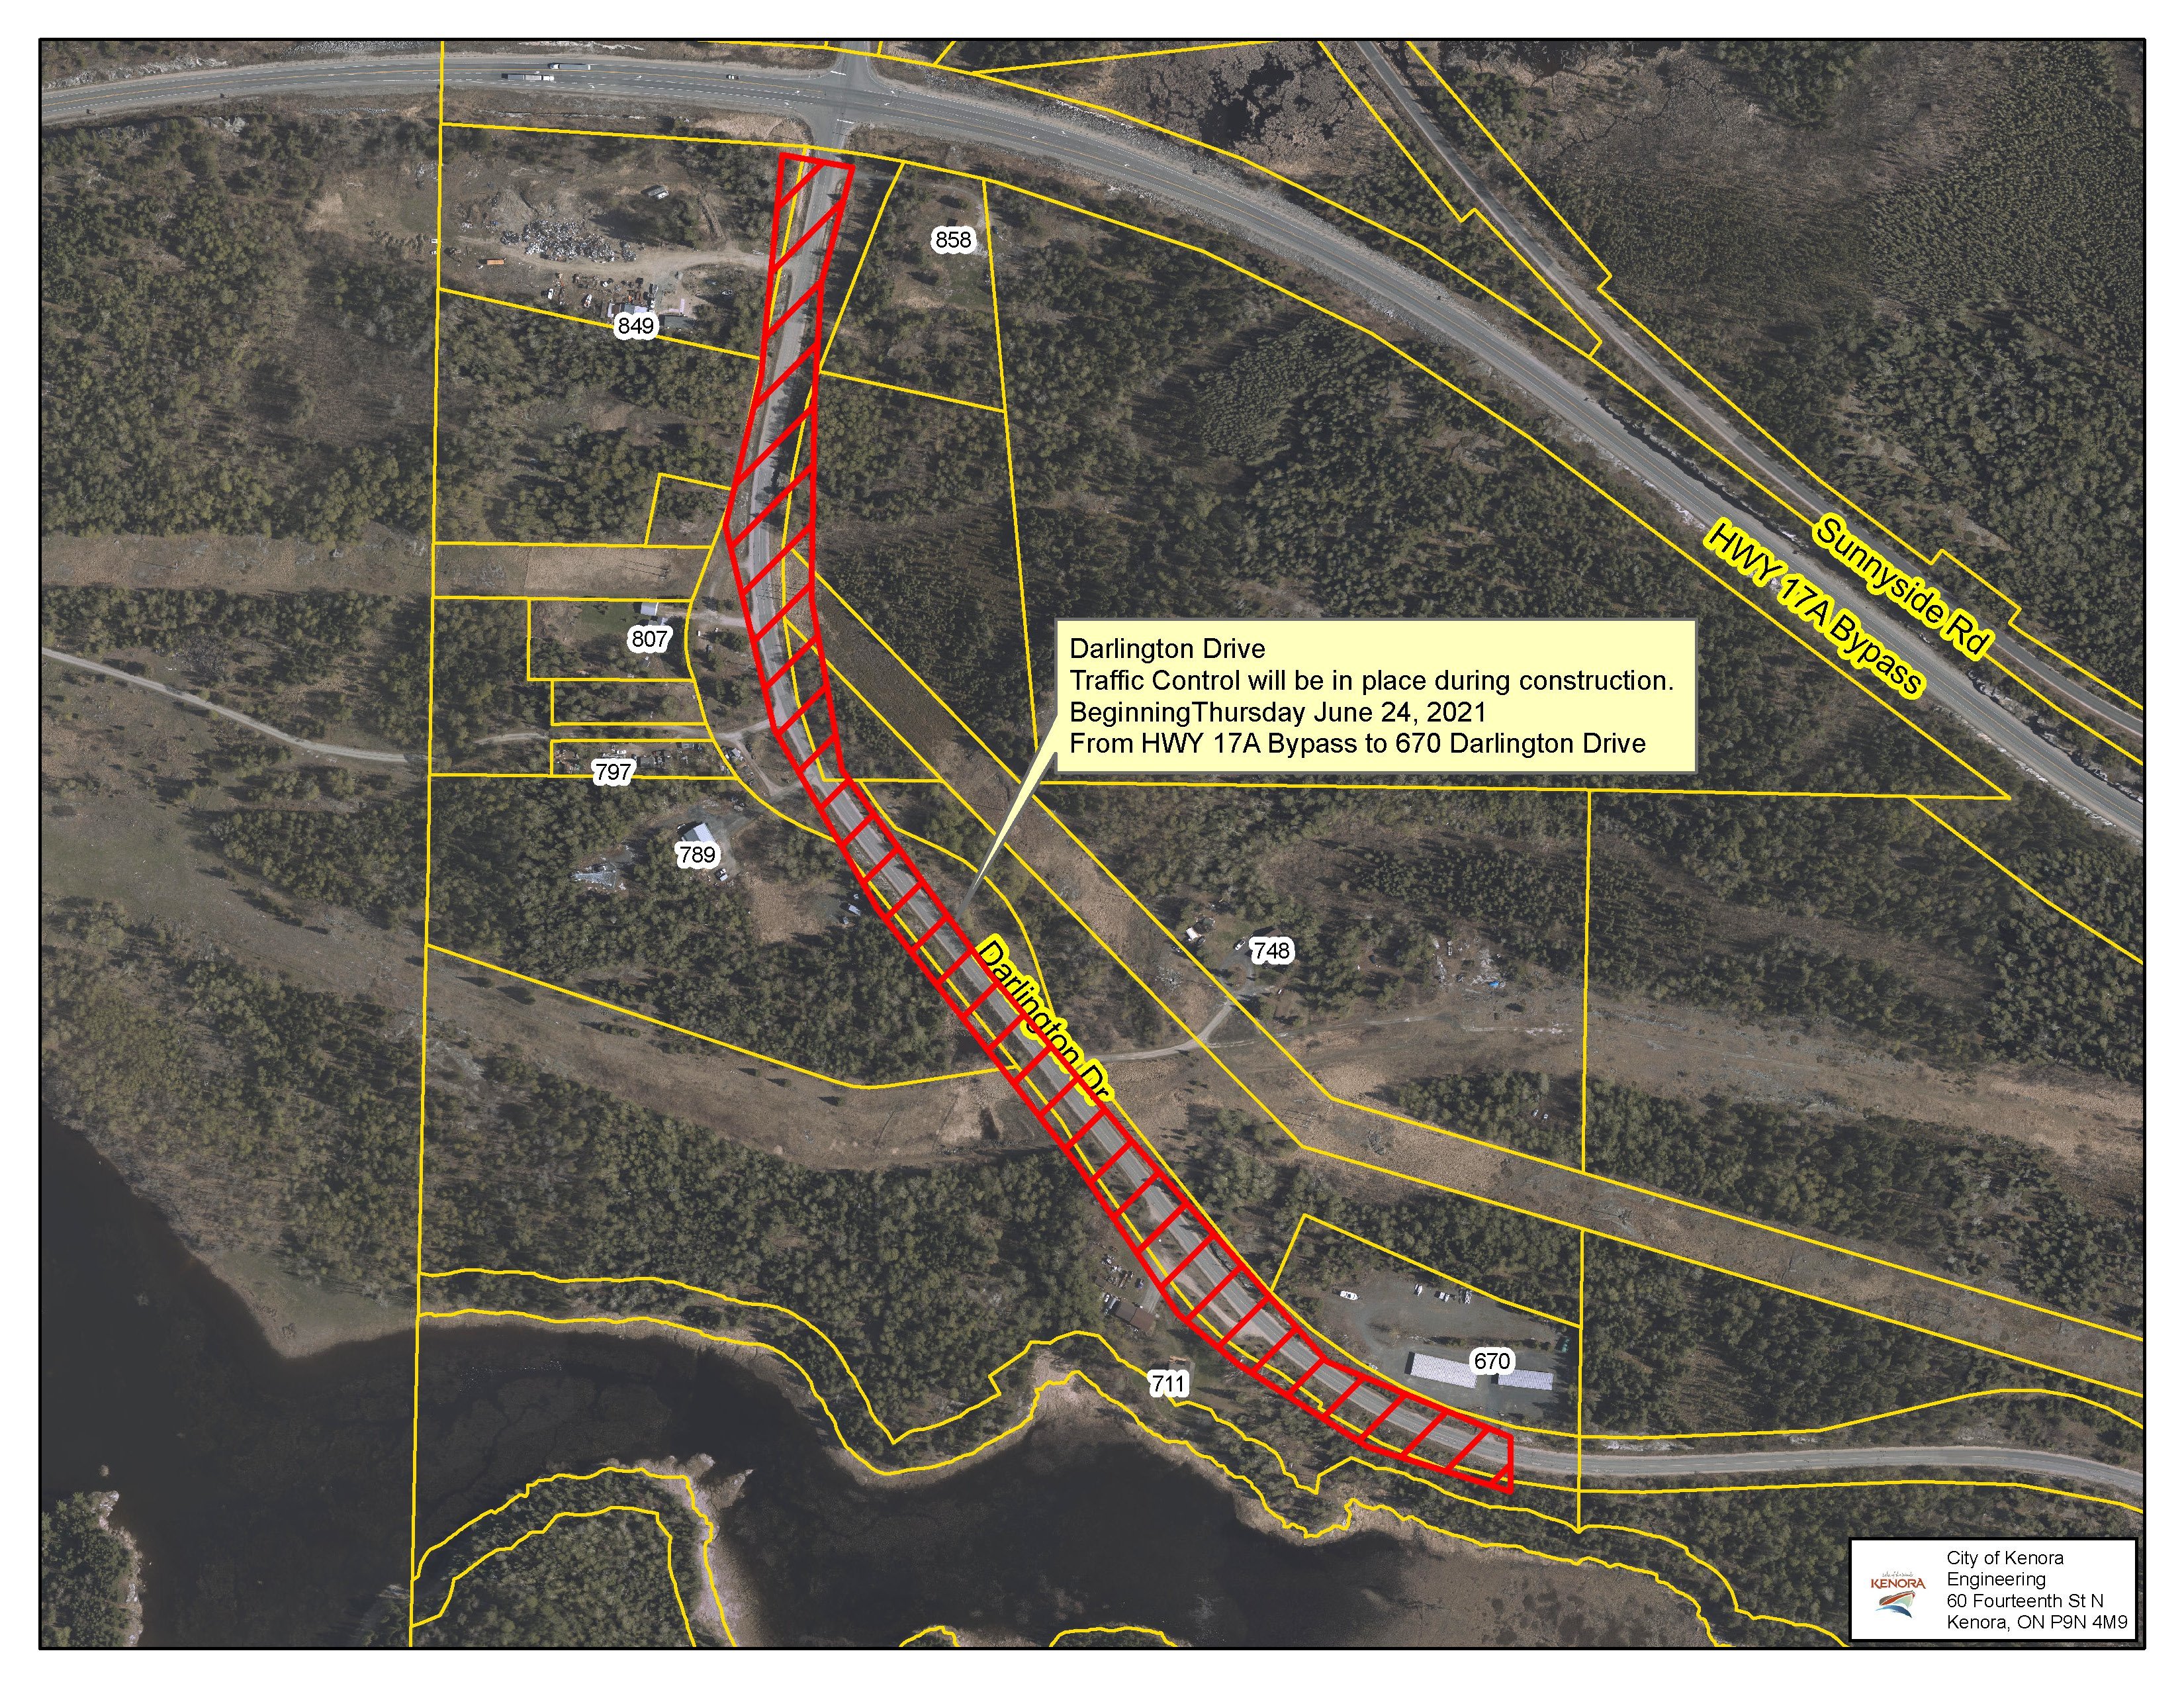 aerial view of highway paving work area